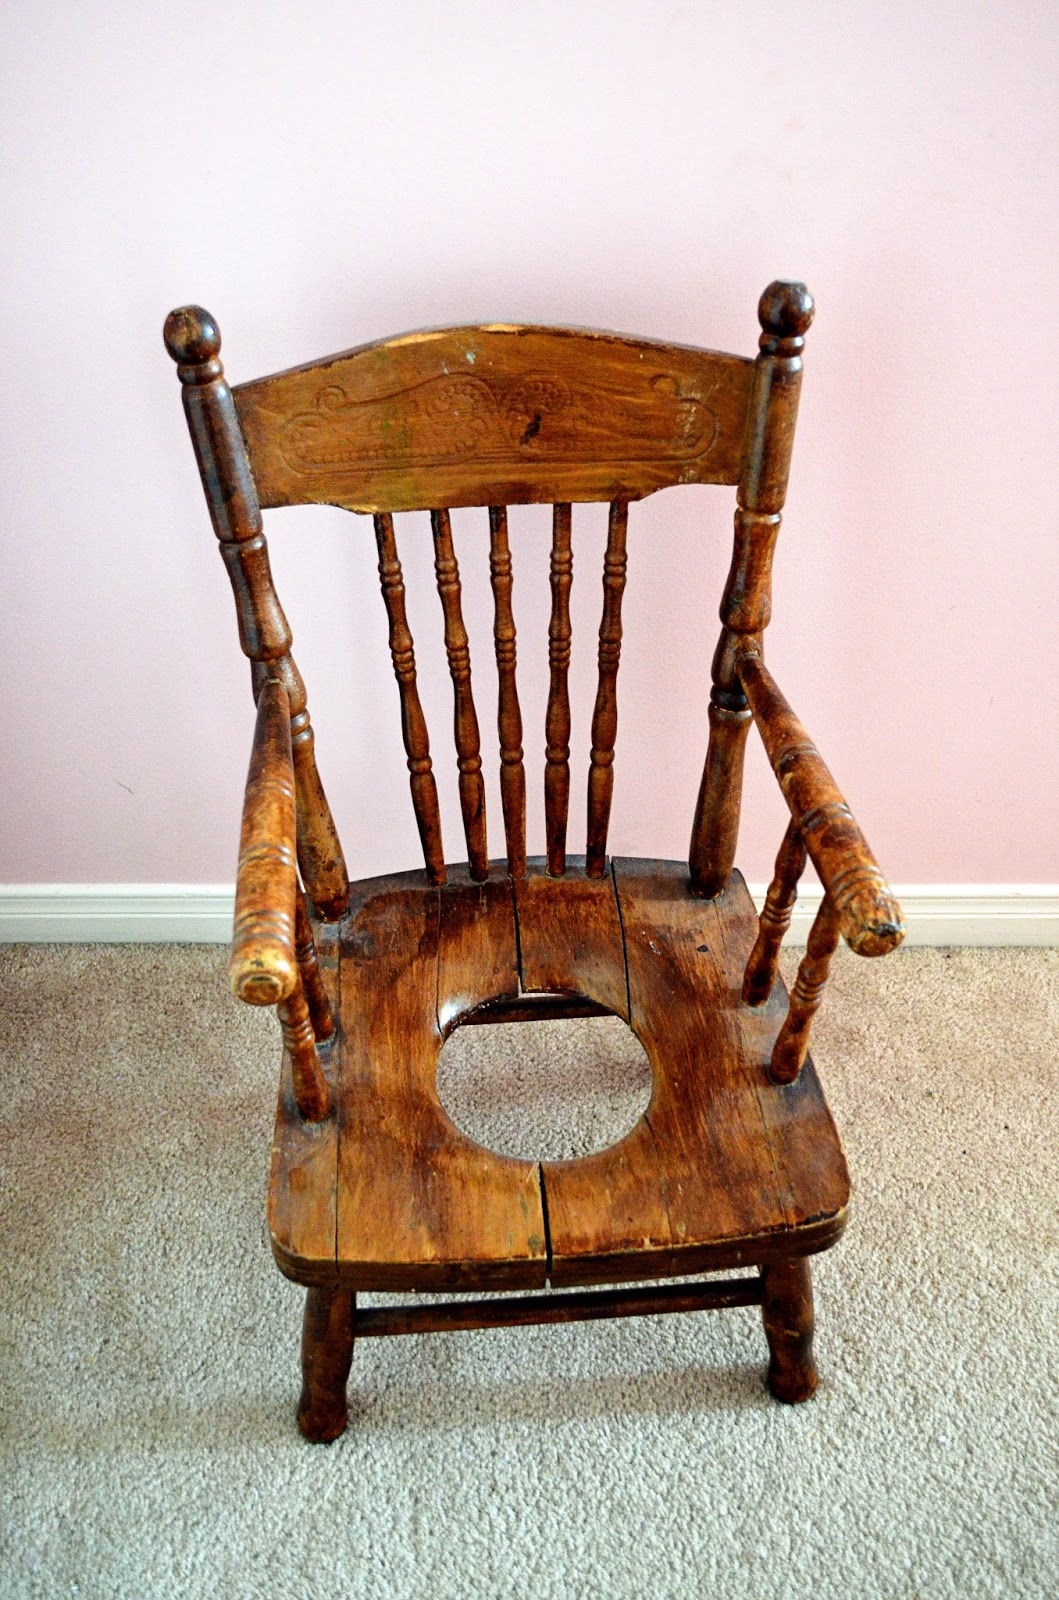 And here is Mom's potty chair. And you thought it was hard cleaning that  little plastic potty chair! - Woman In Real Life:The Art Of The Everyday: Antique Chairs